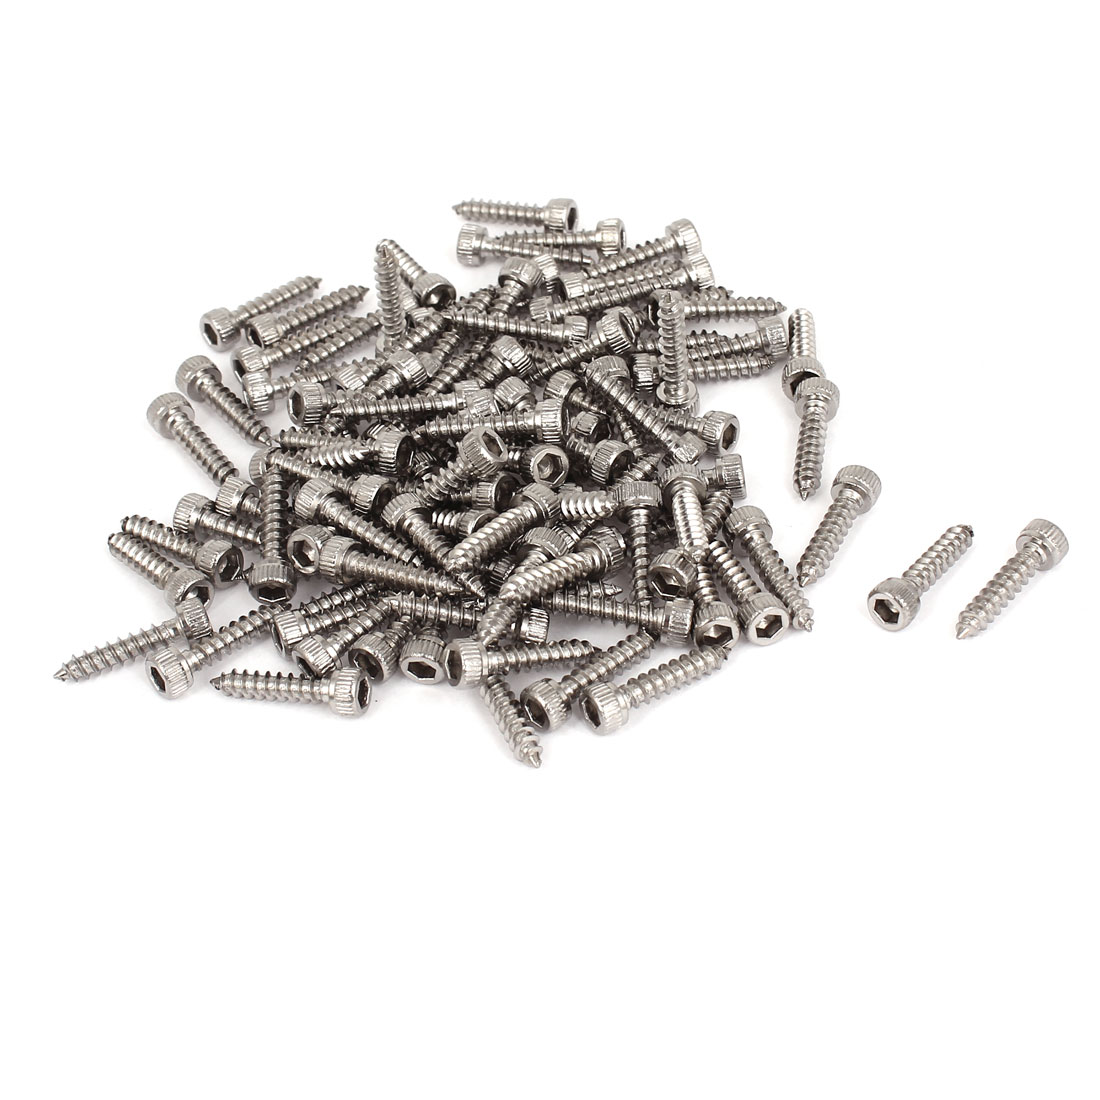 100 Pcs M3.5x16mm Stainless Steel Hex Socket Cap Head Self Tapping Screws